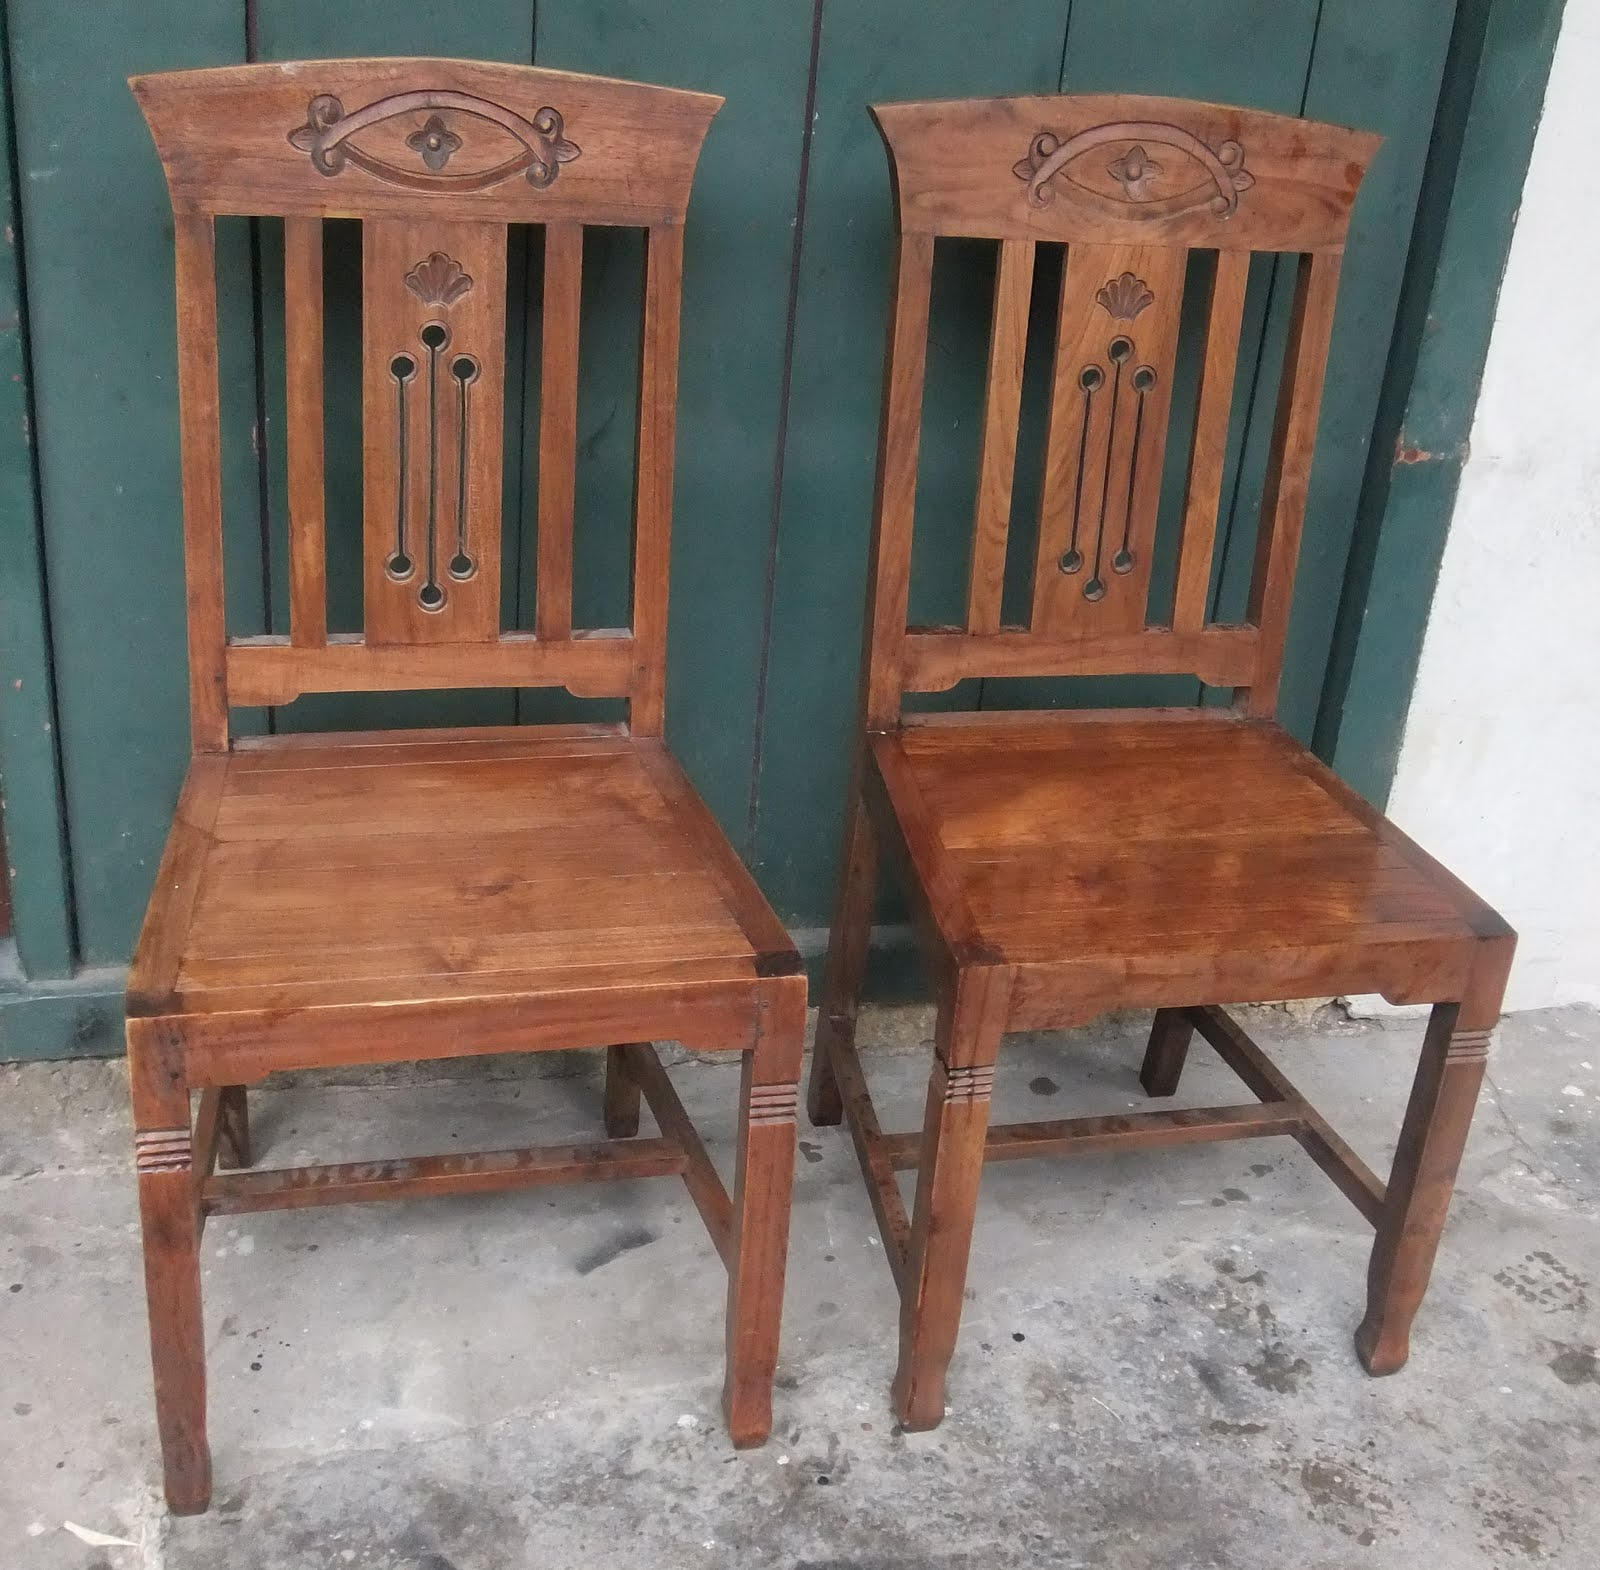 How To Recane A Chair Captain Chairs For Center Console Boats Furniture Fusion Combining Vintage And Modern Ashley